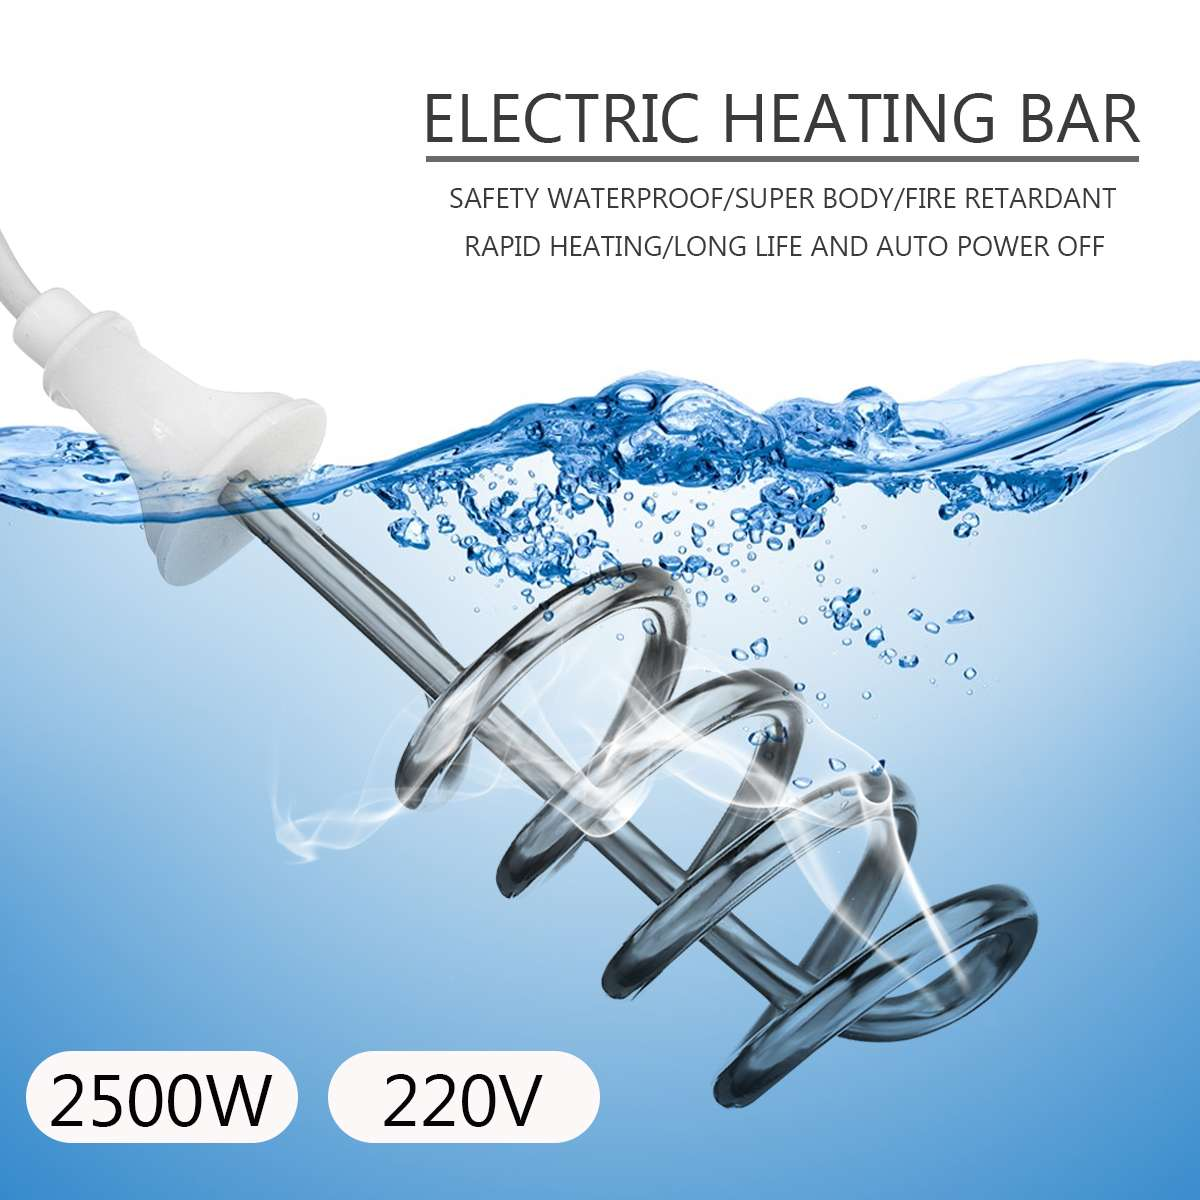 2500W Water Heater Portable Electric Immersion Element Boiler For Bath Tub 220V